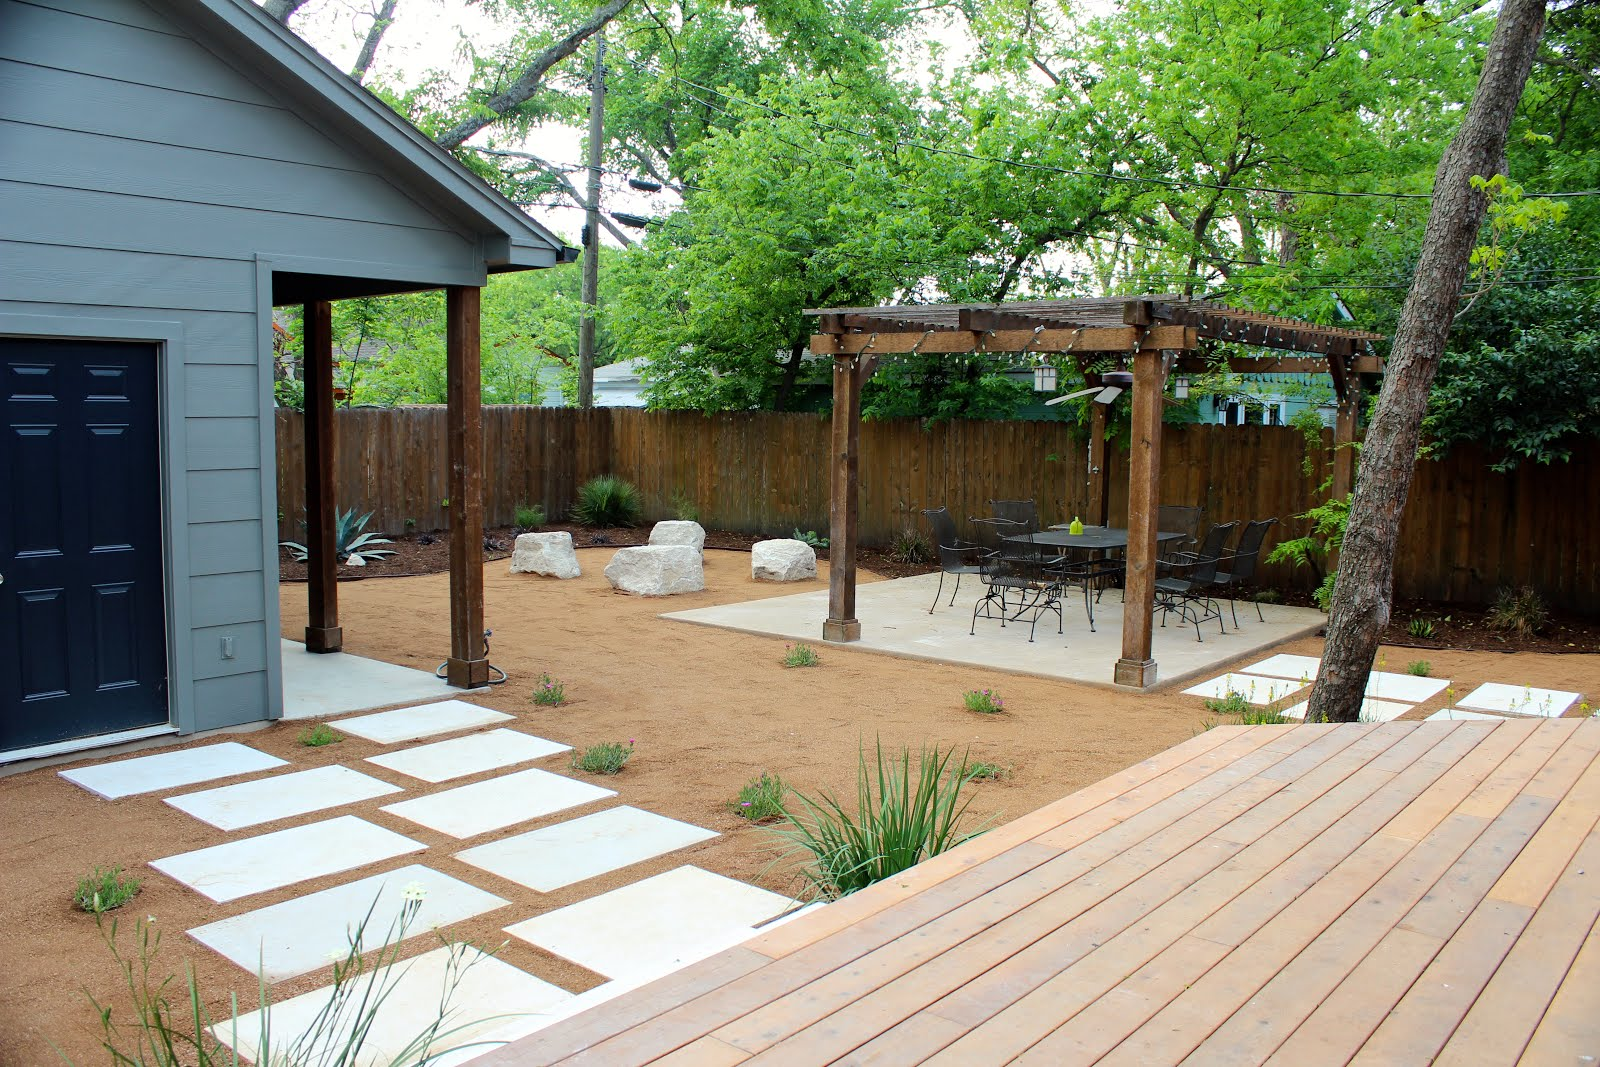 Crushed Granite For Landscaping - Landscape Ideas on Decomposed Granite Backyard Ideas id=57611